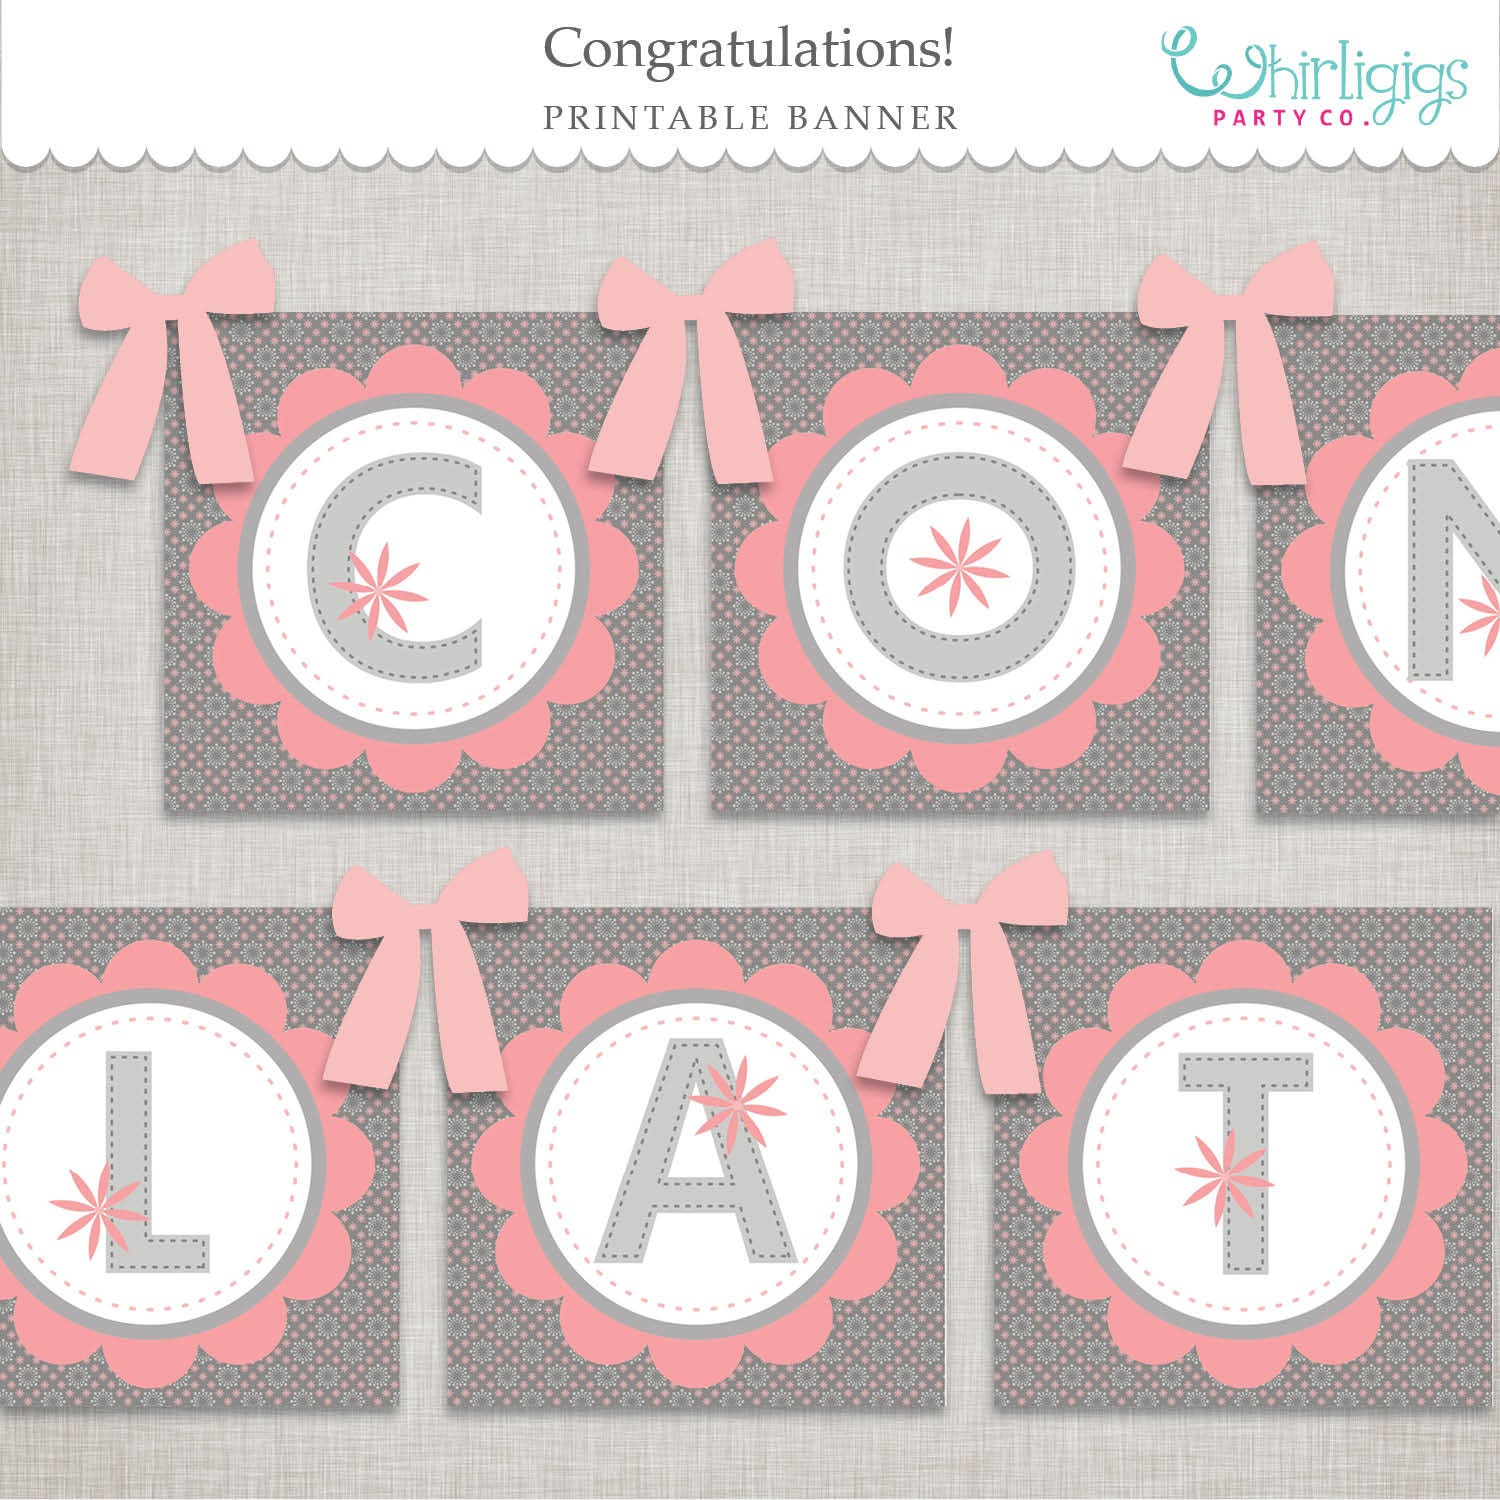 picture about Congratulations Banner Free Printable named Red Floral Congratulations Banner Printable Report Instantaneous Down load